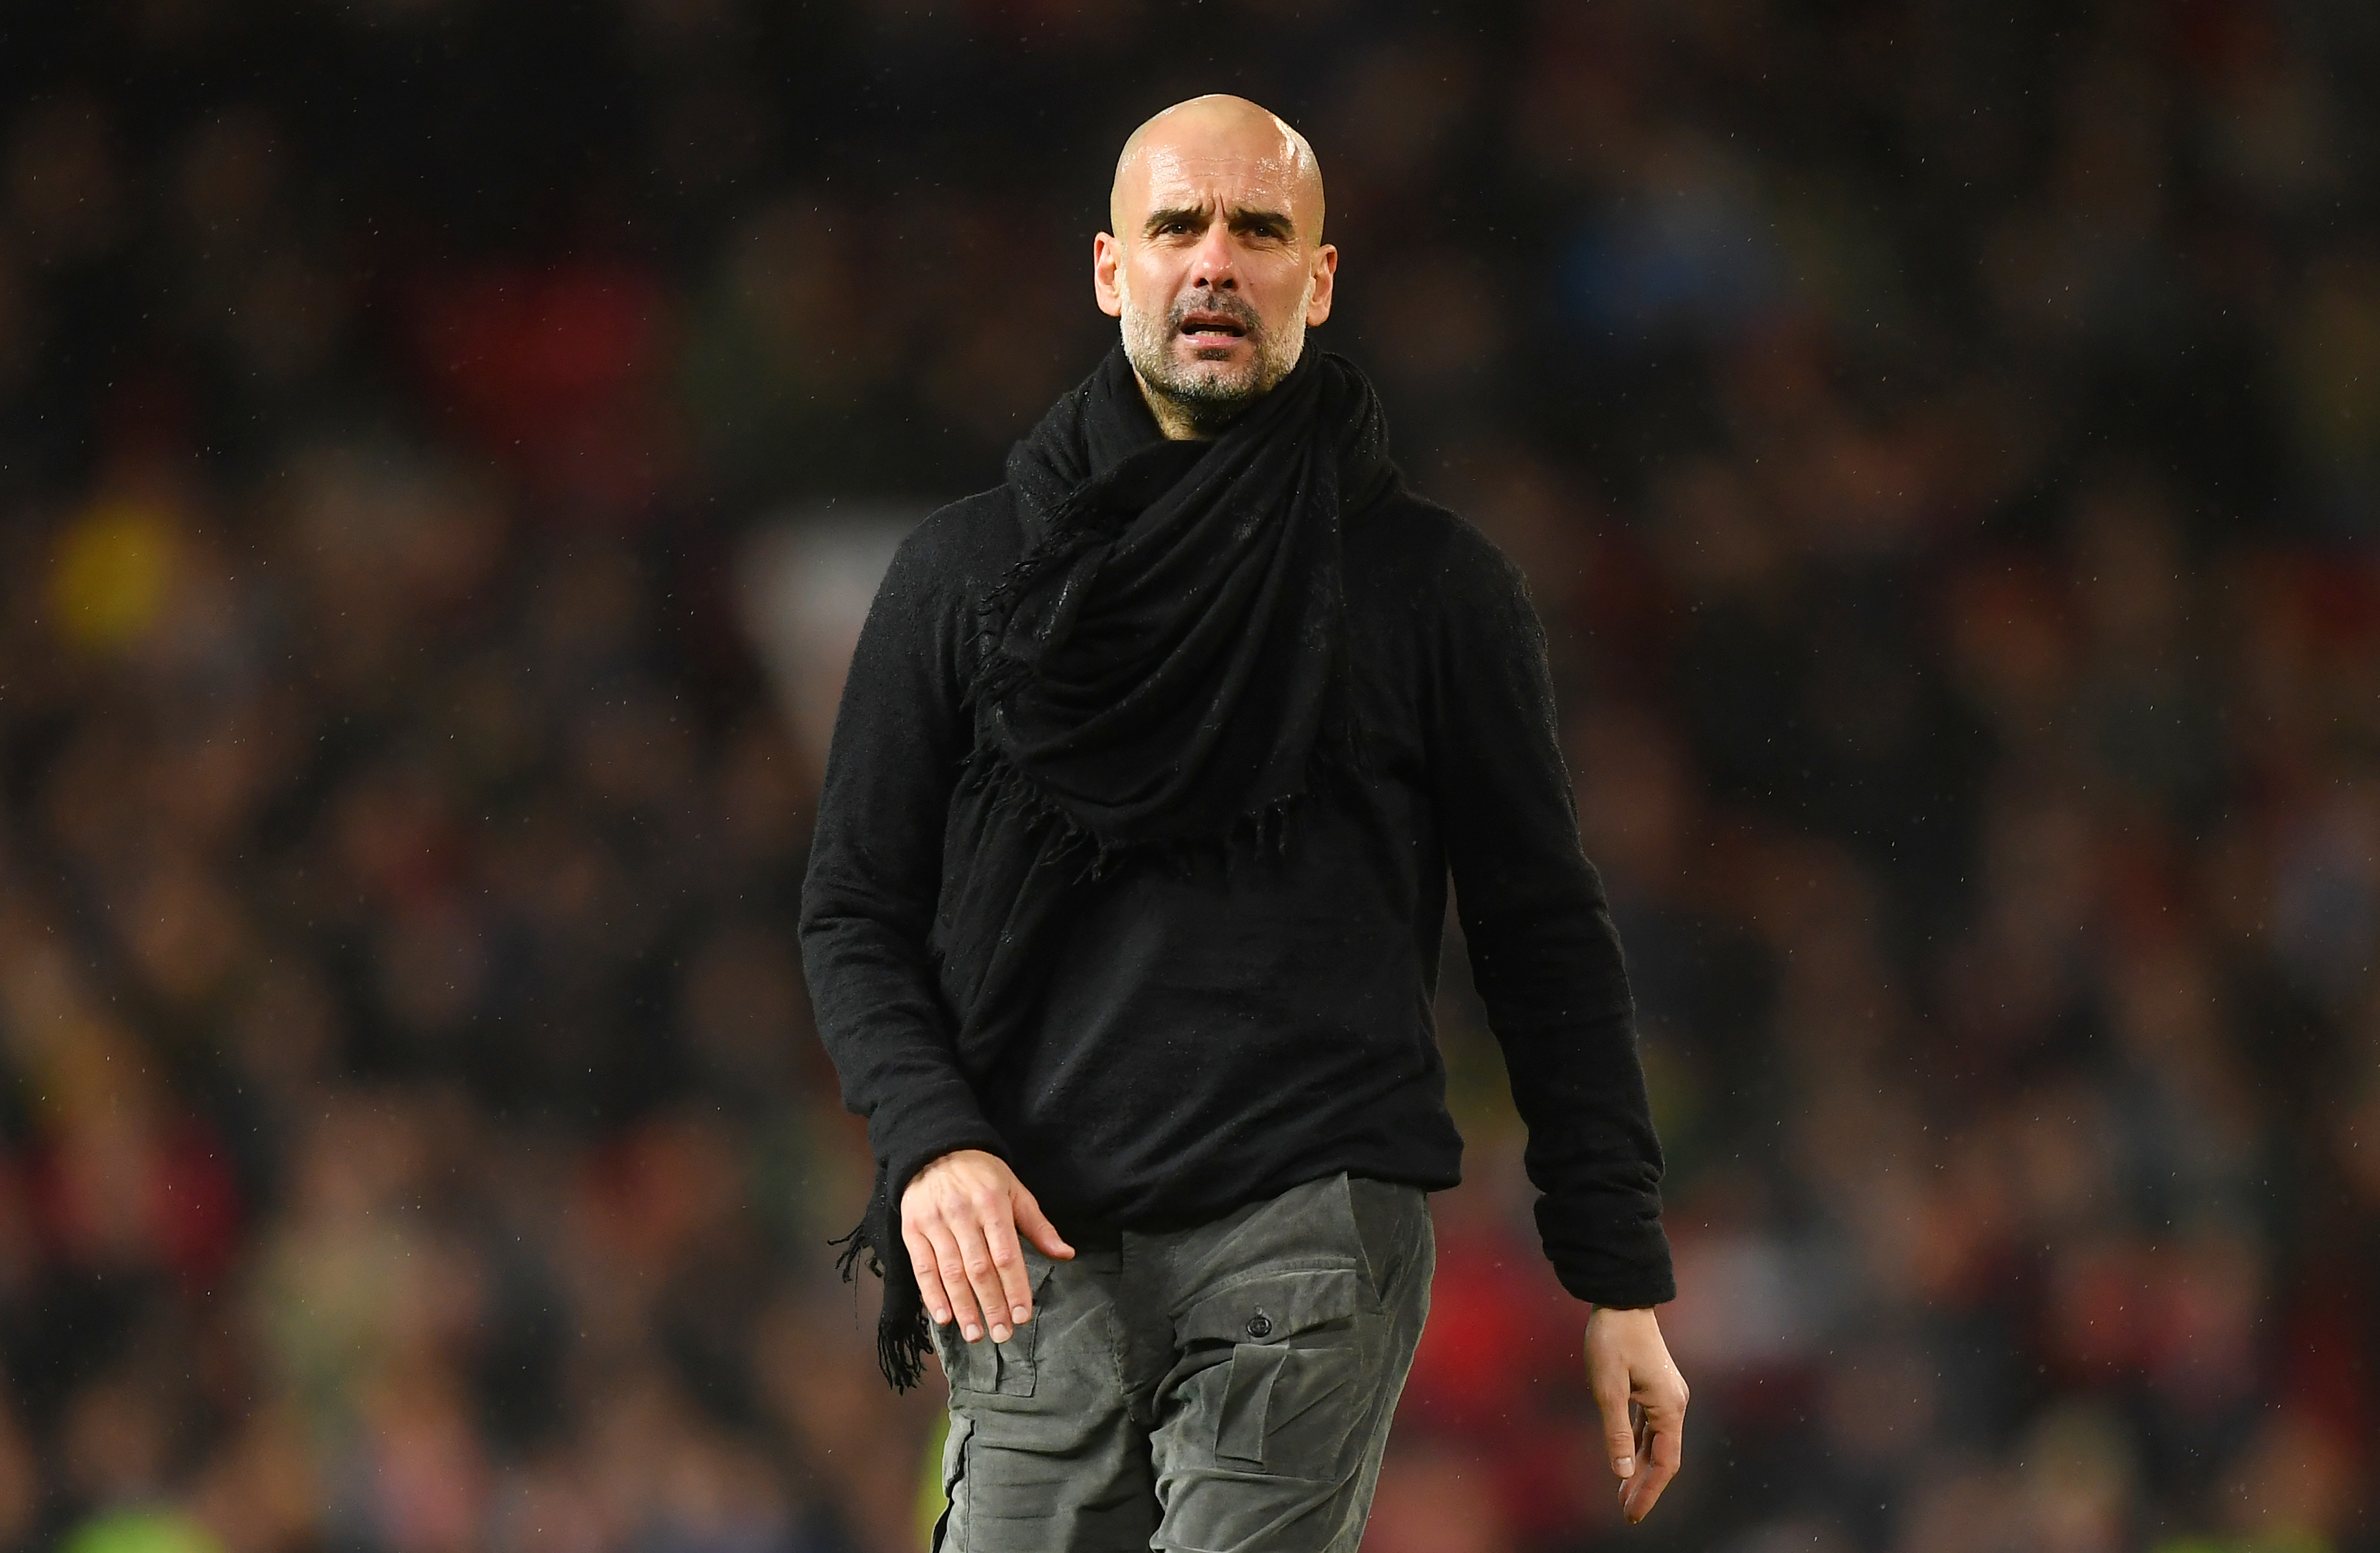 Manchester City manager Pep Guardiola during the Premier League match between Manchester United and Manchester City at Old Trafford on March 8.